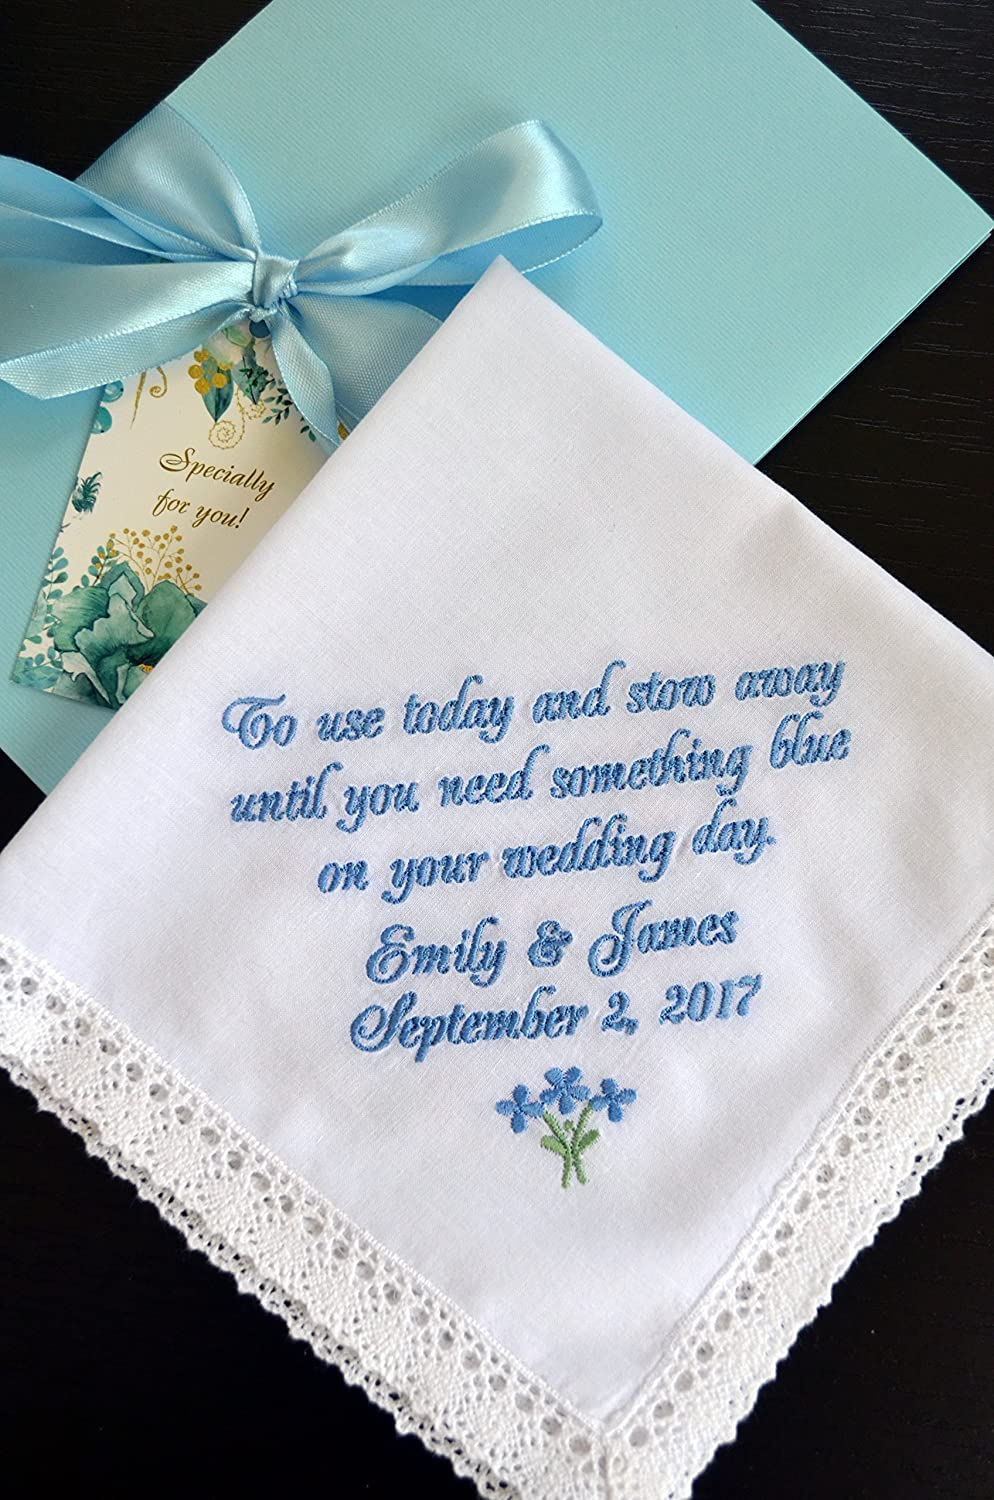 82bfa43d0 Flower girl gift something old for your wedding day Bride gift to Flower  girl wedding gift wedding handkerchief Groom gift wedding hankie  Personalized ...